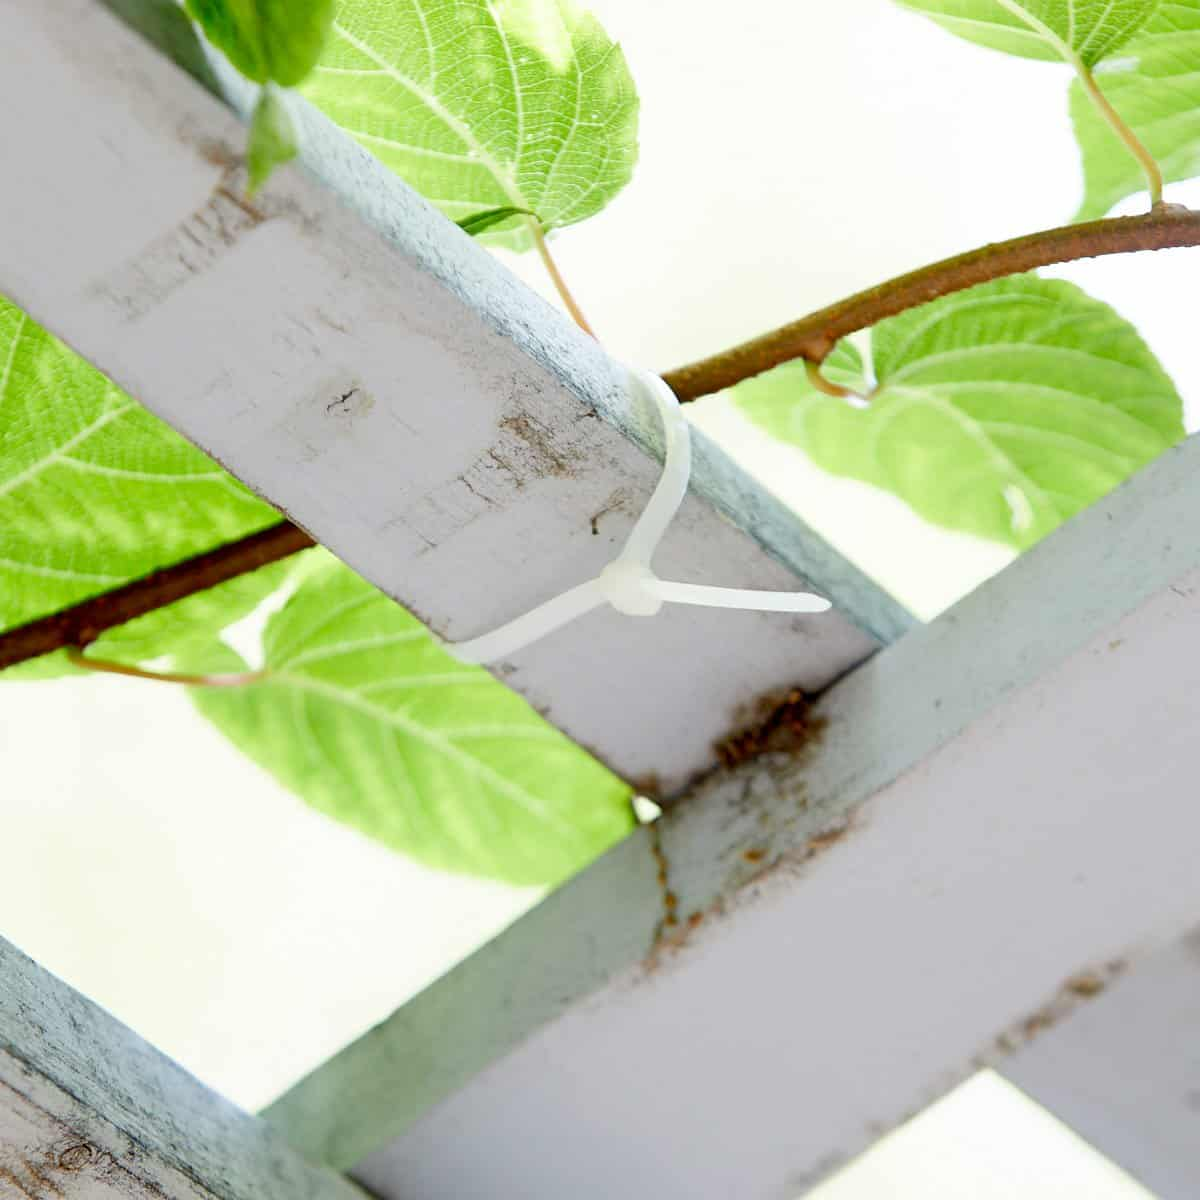 Vines tied to the trellis with a zip tie.